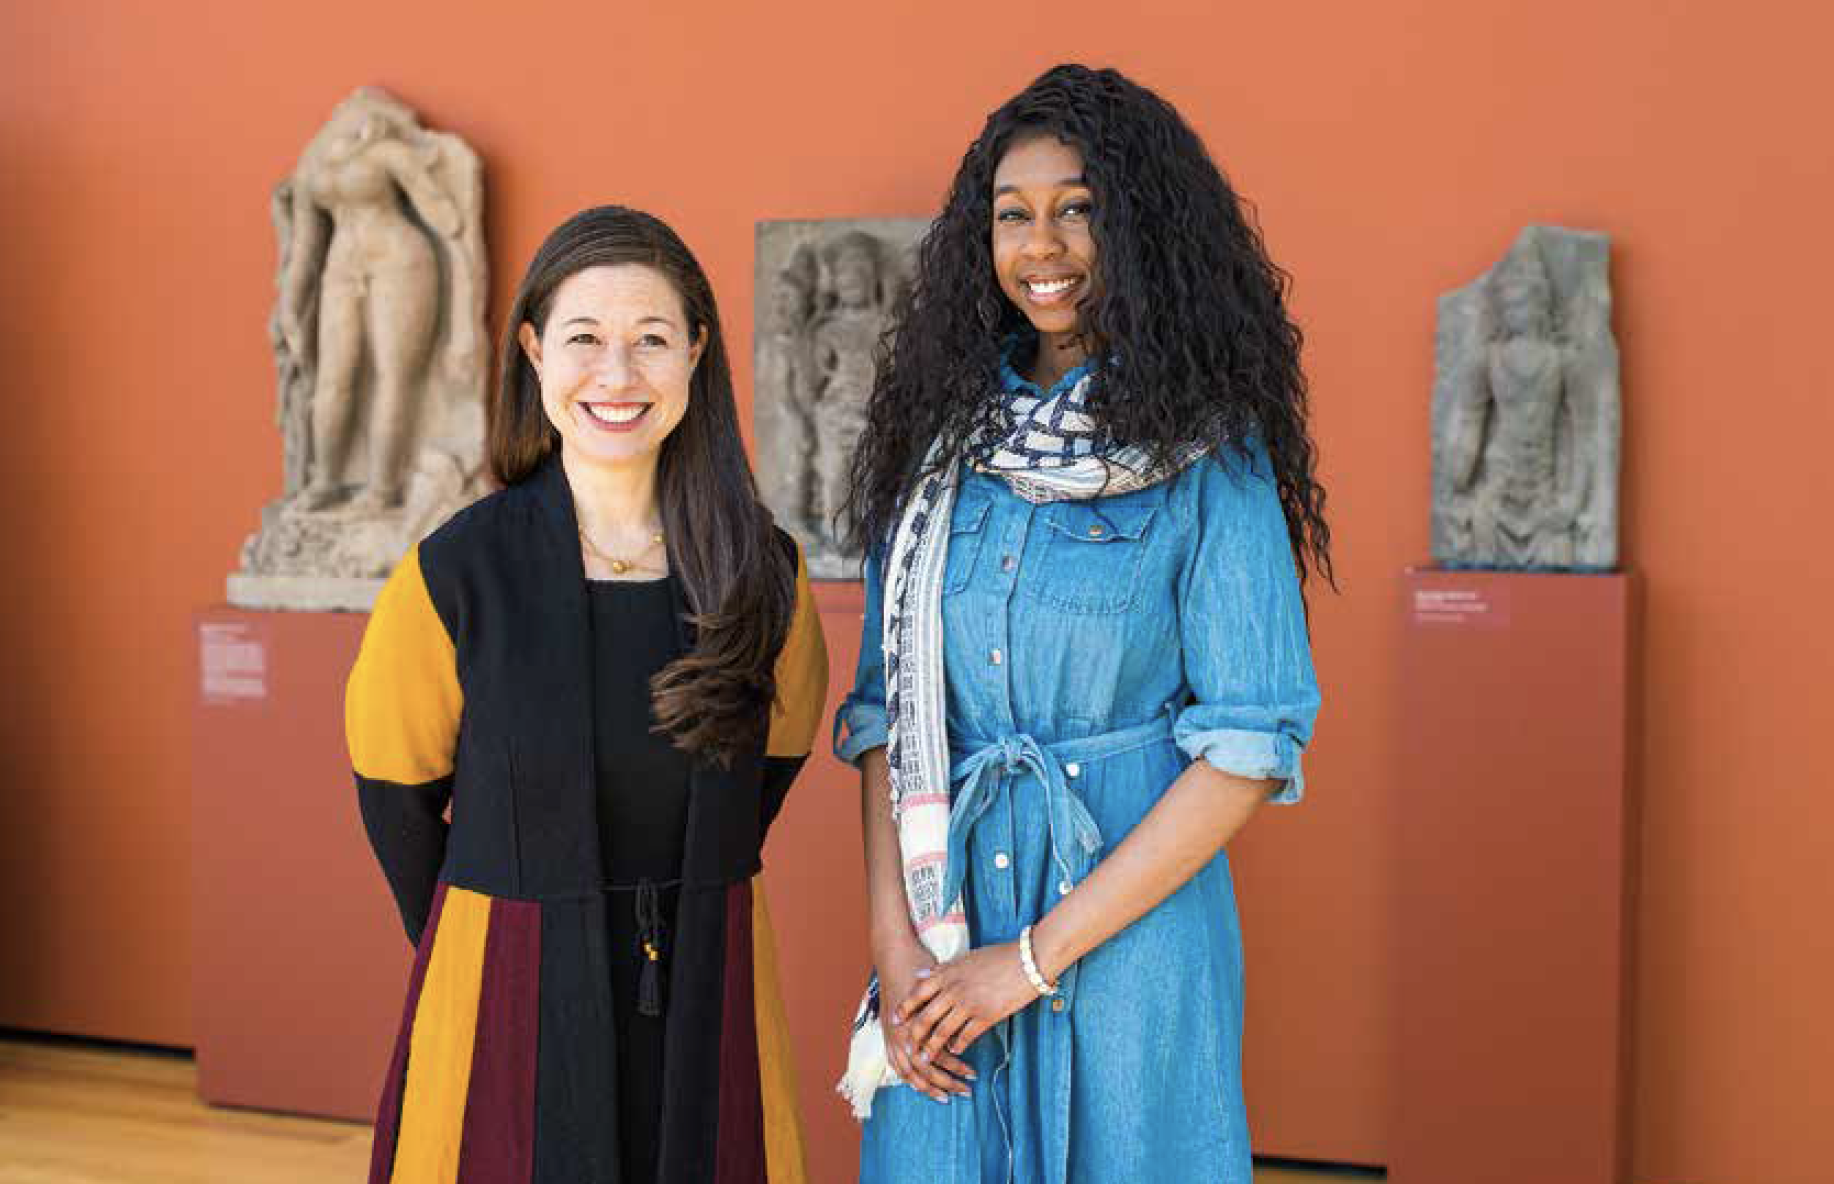 Adriana Nelson and her professor in the Cleveland Museum of Art.